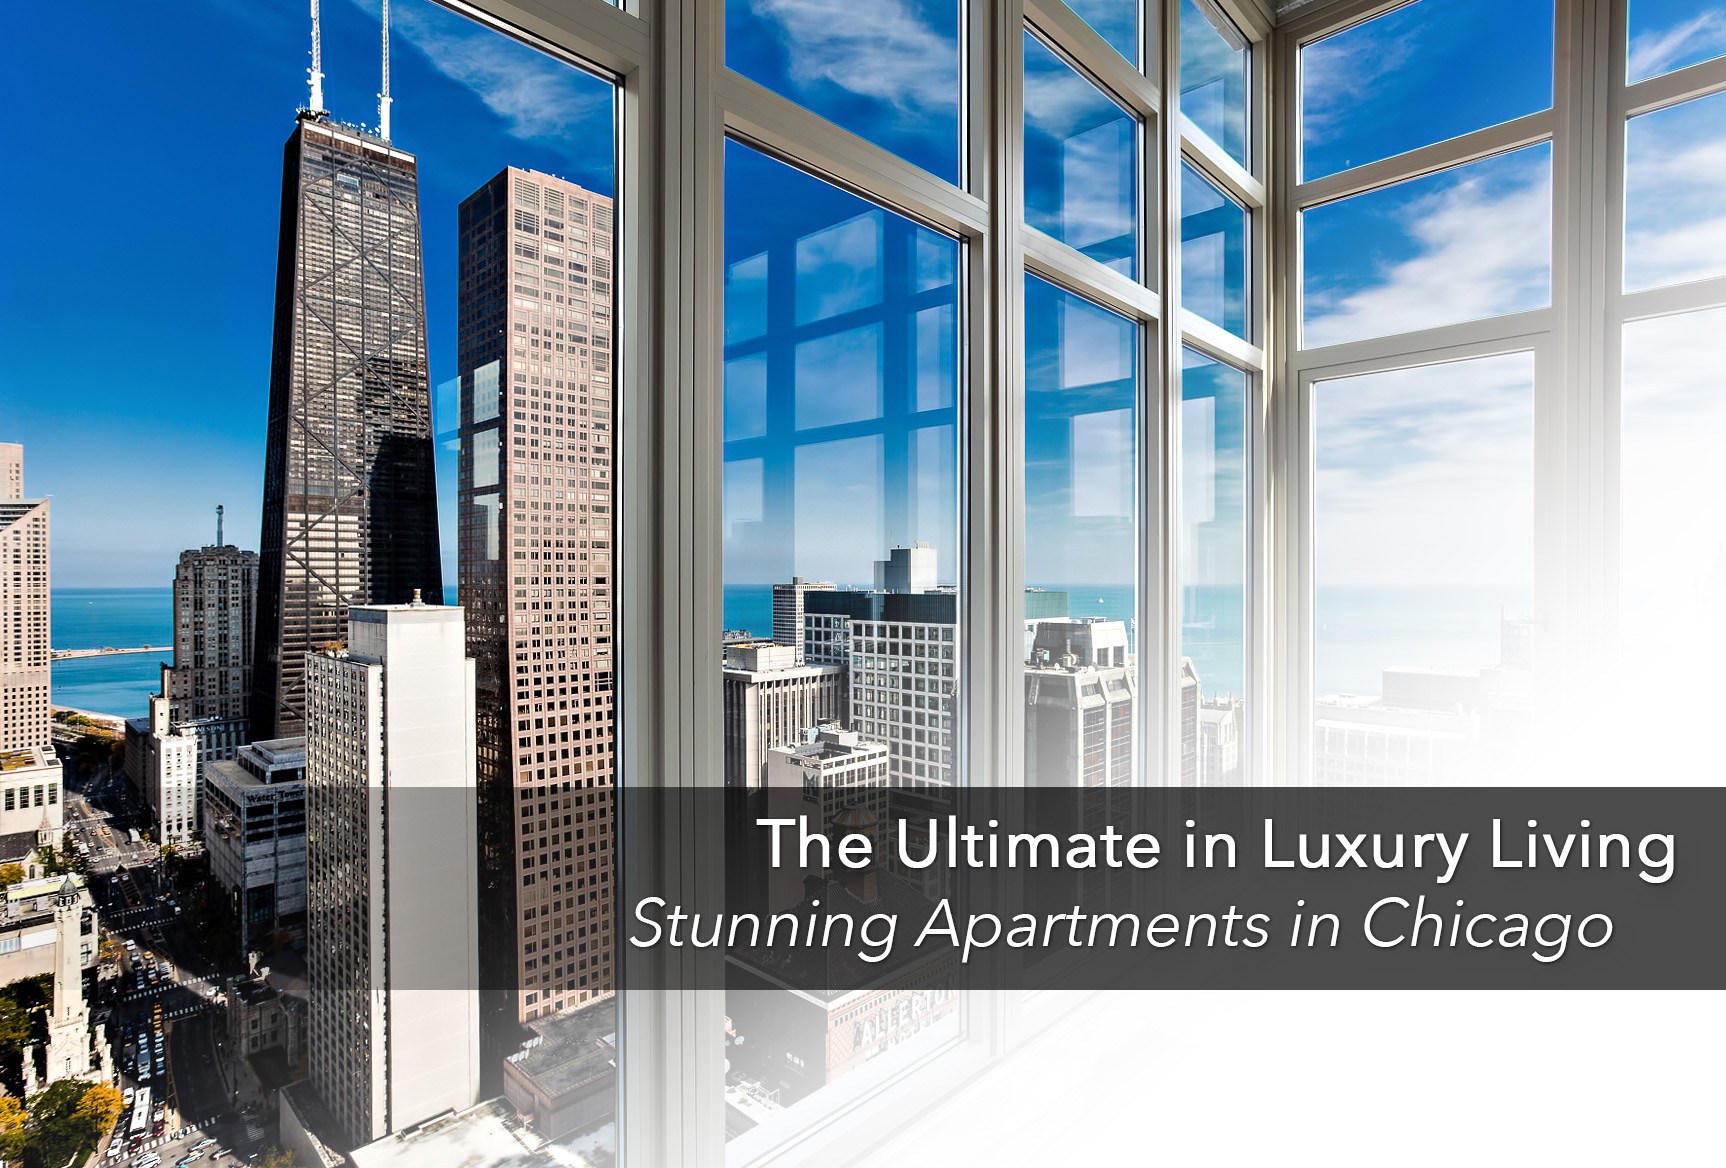 The Ultimate in Luxury Living - Stunning Apartments in Chicago